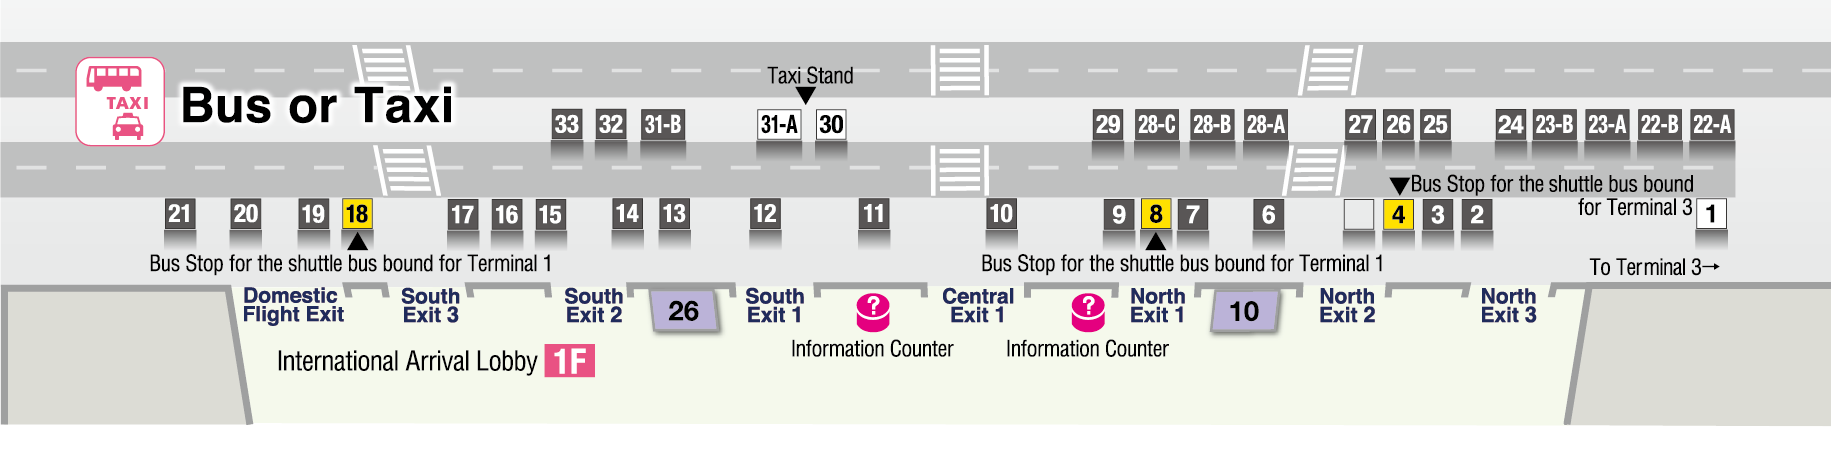 Guide to Terminal 2 Shuttle Bus Stops